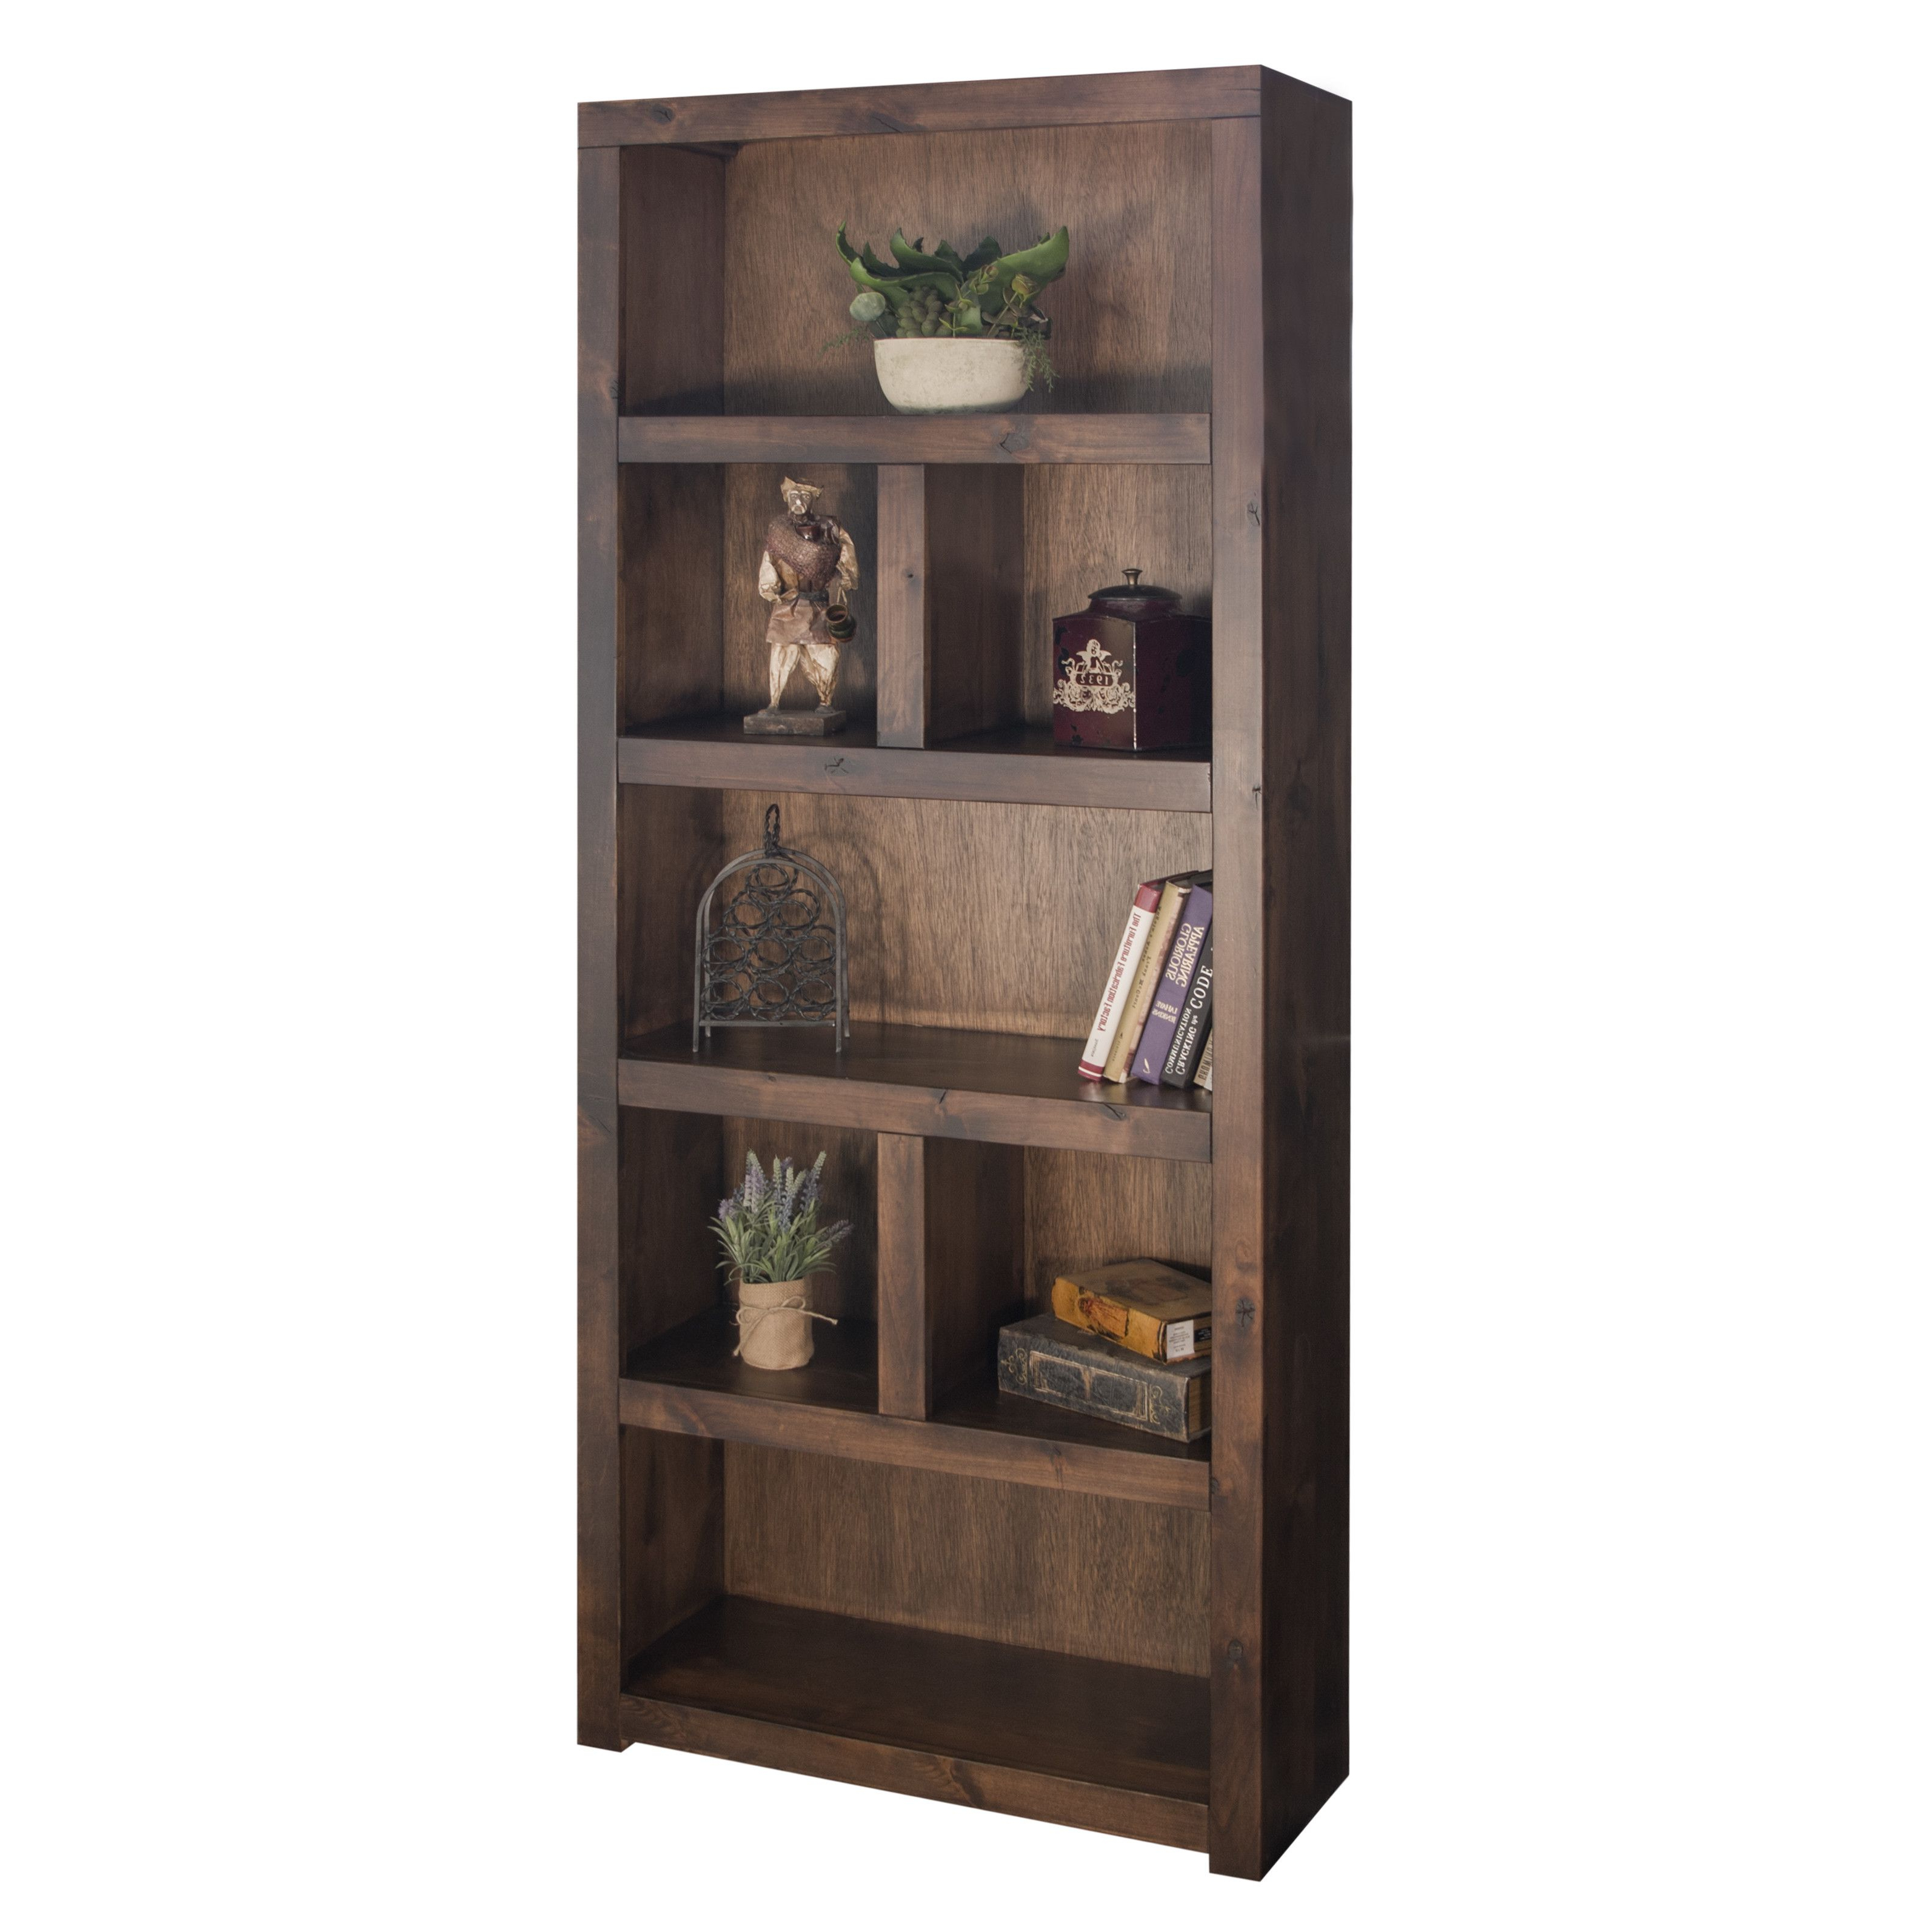 Raflar, 2019 For Well Known Orford Standard Bookcases (View 15 of 20)